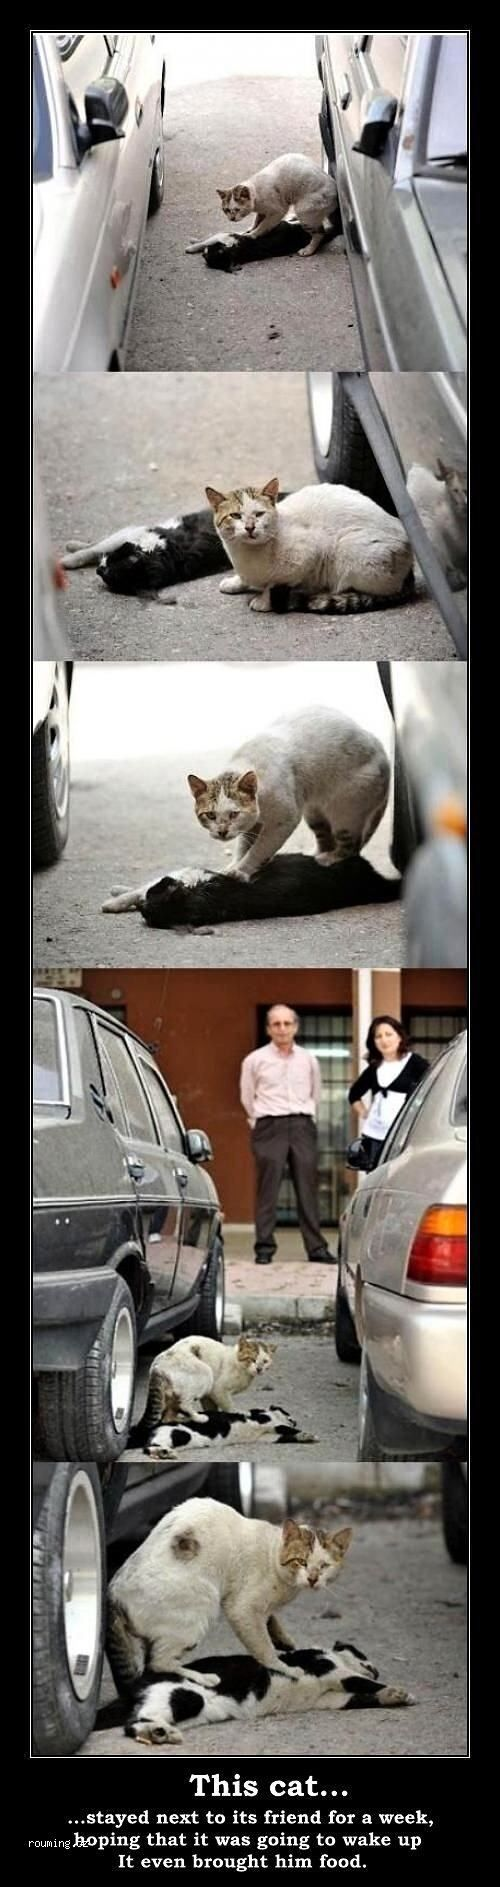 This makes me want to cry but it is SO sweet of the cat. Whoever thinks animals don't have souls are stupid!!